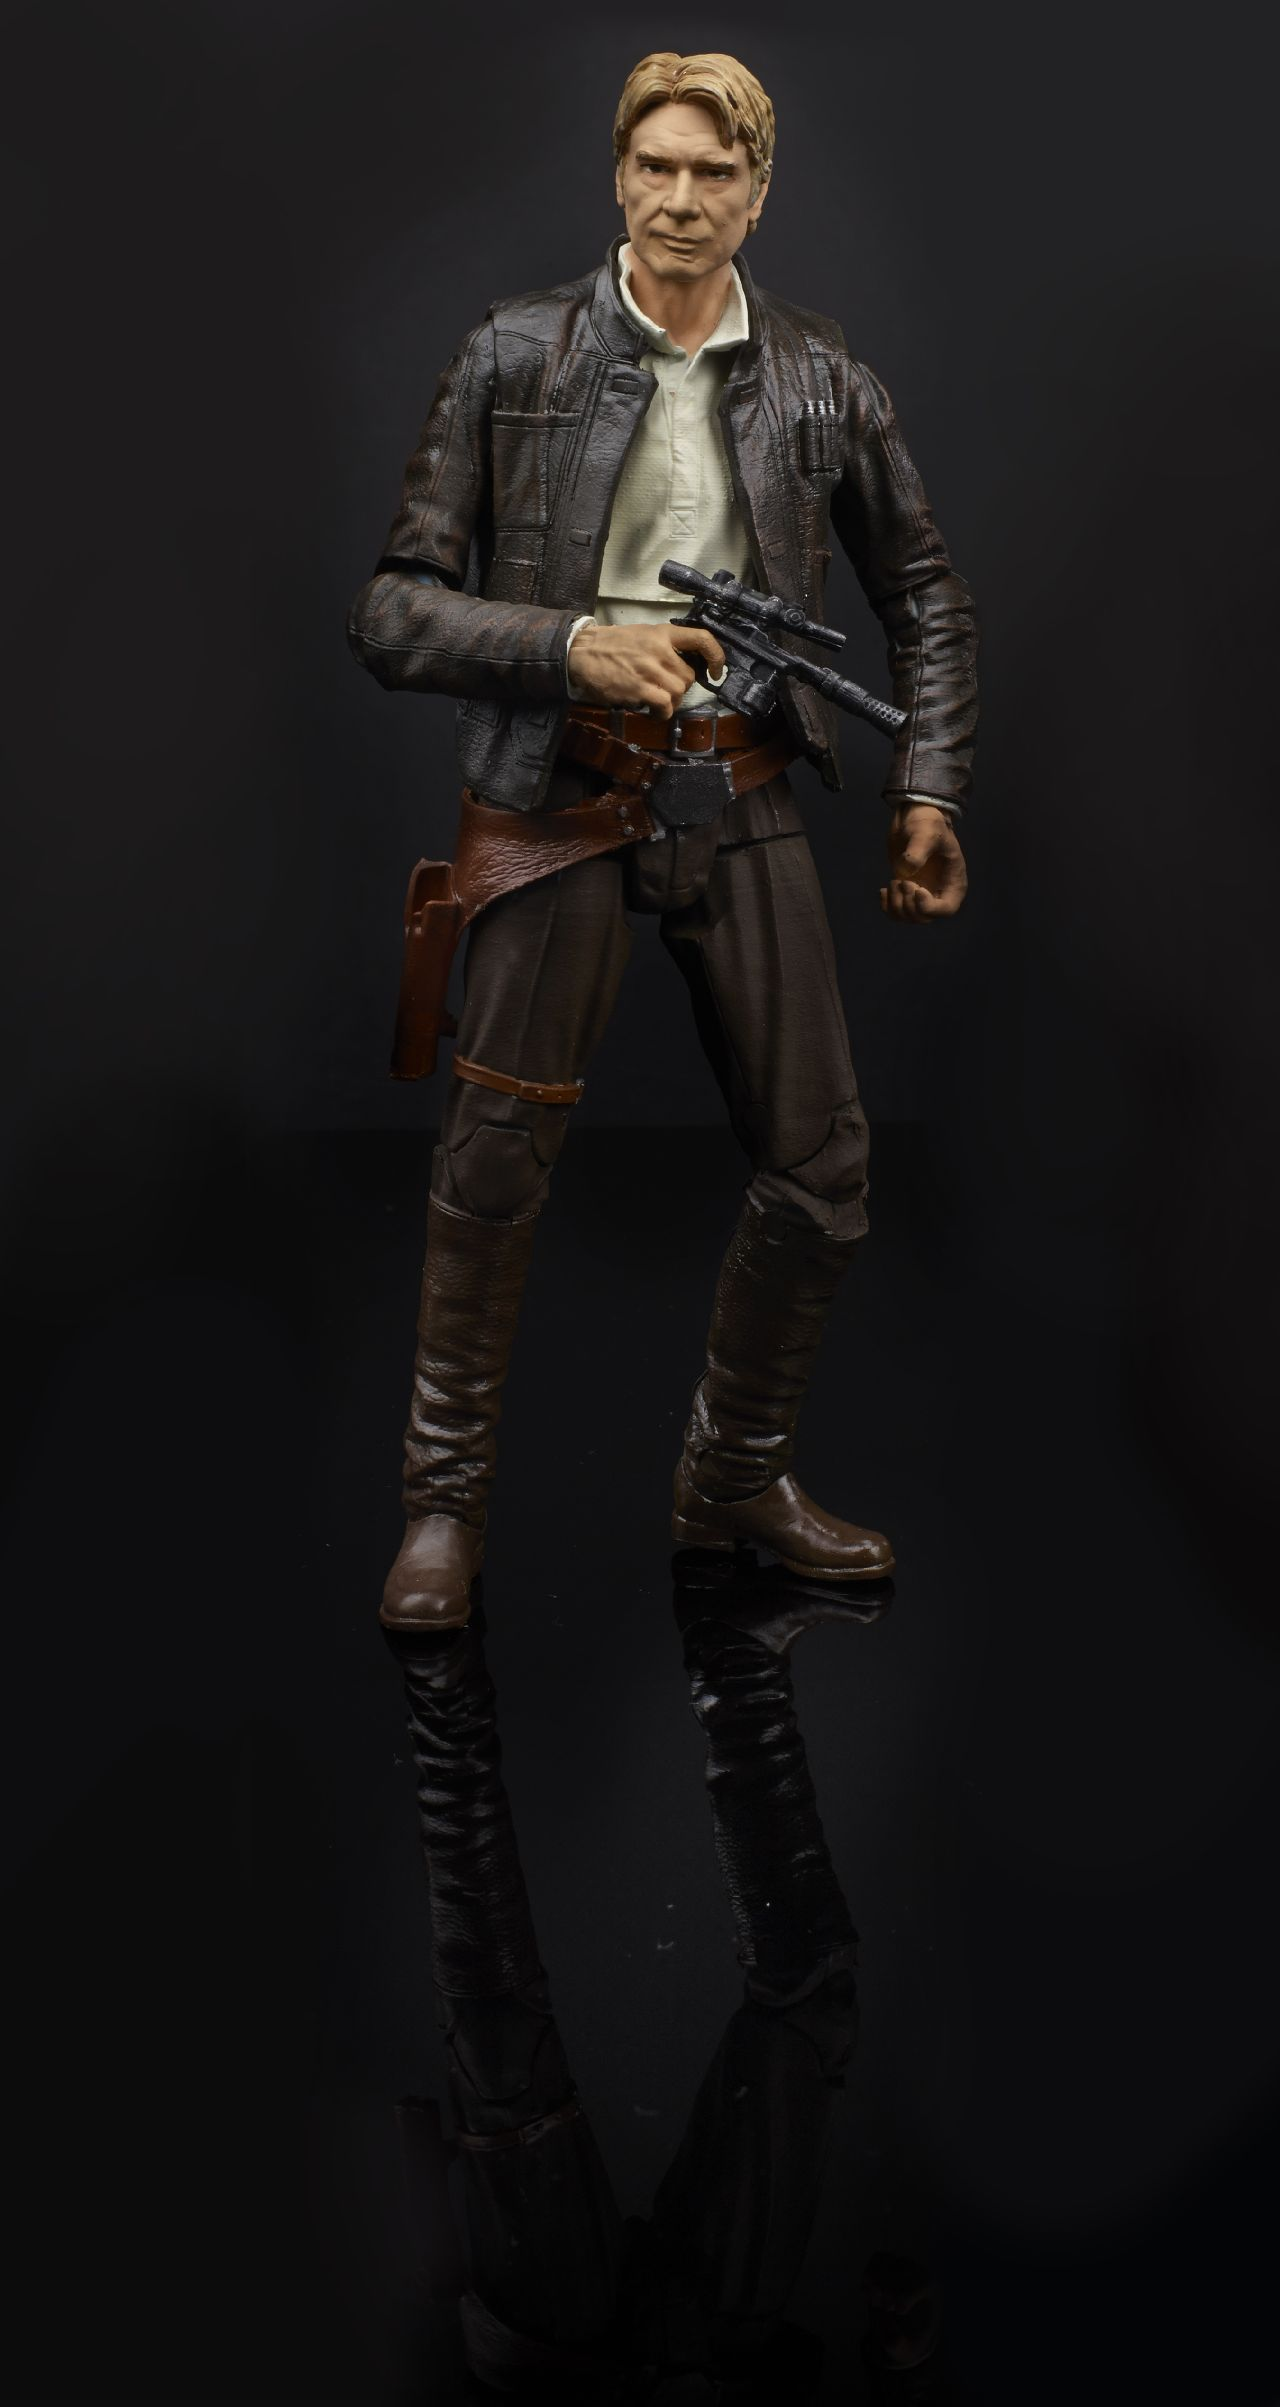 Star Wars: The Force Awakens Han Solo